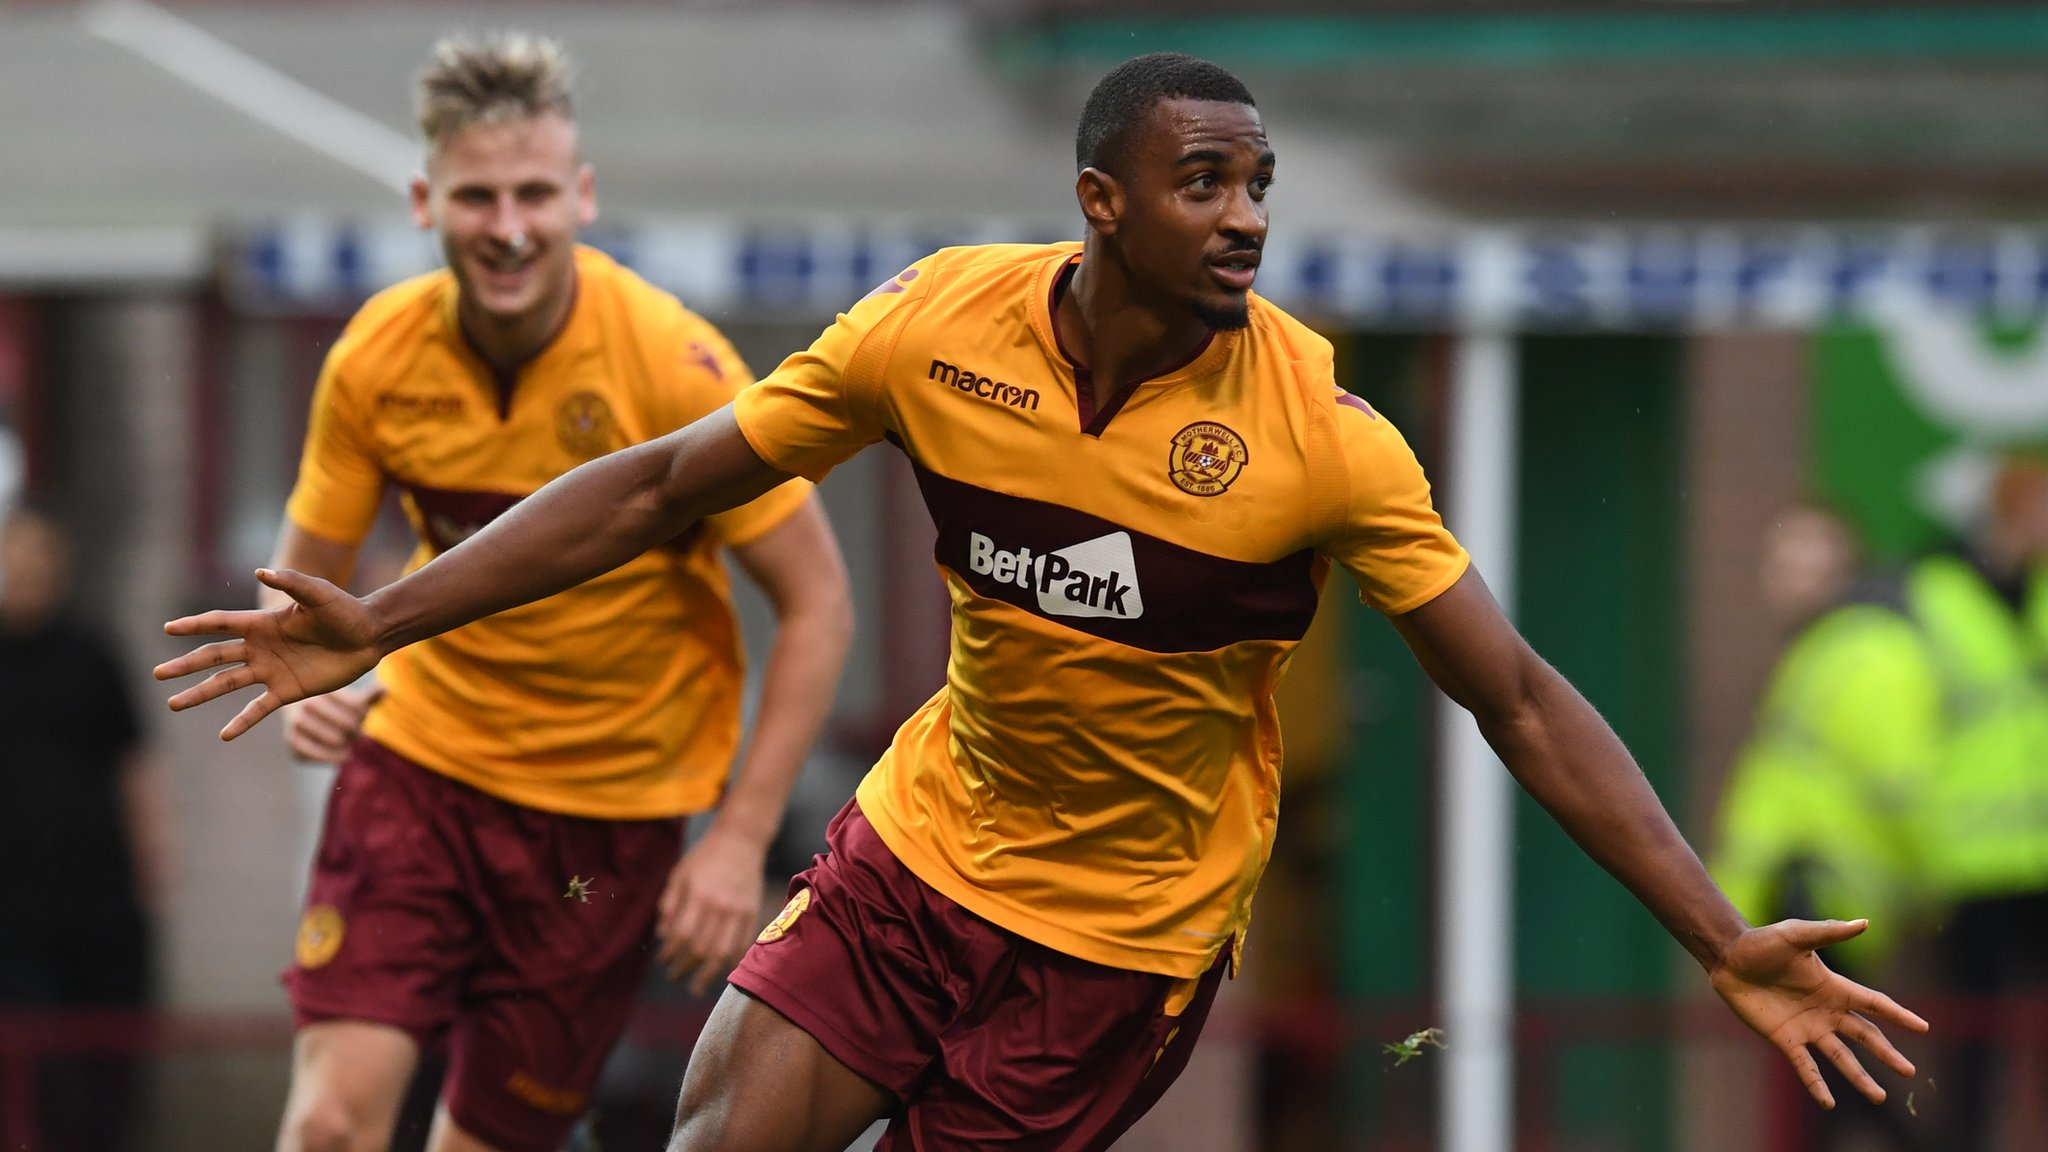 Motherwell U21s to meet Ross County in Challenge Cup